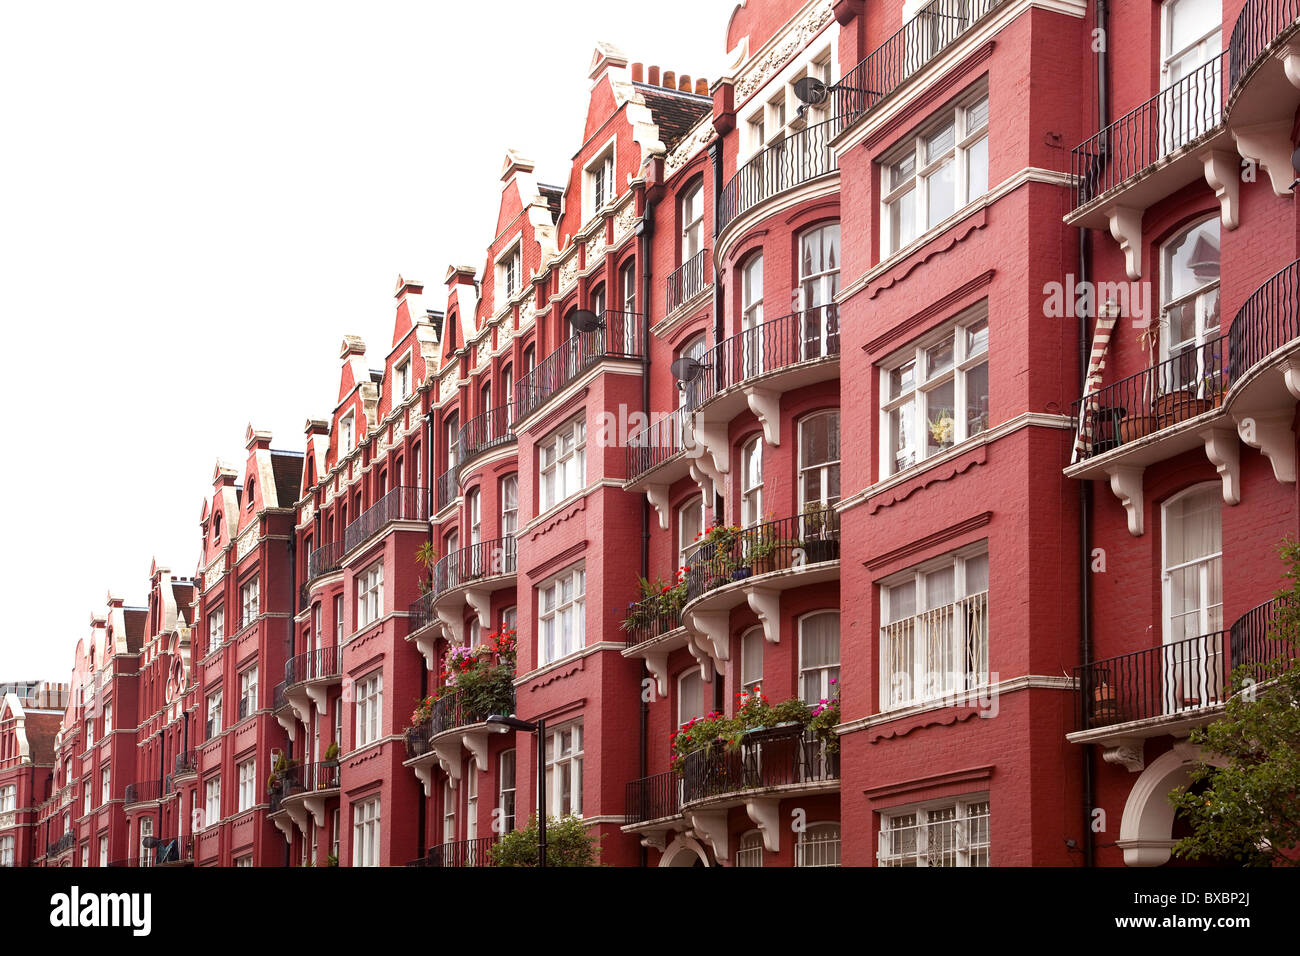 Row of houses with brick buildings, Victorian style, in London, England, United Kingdom, Europe Stock Photo